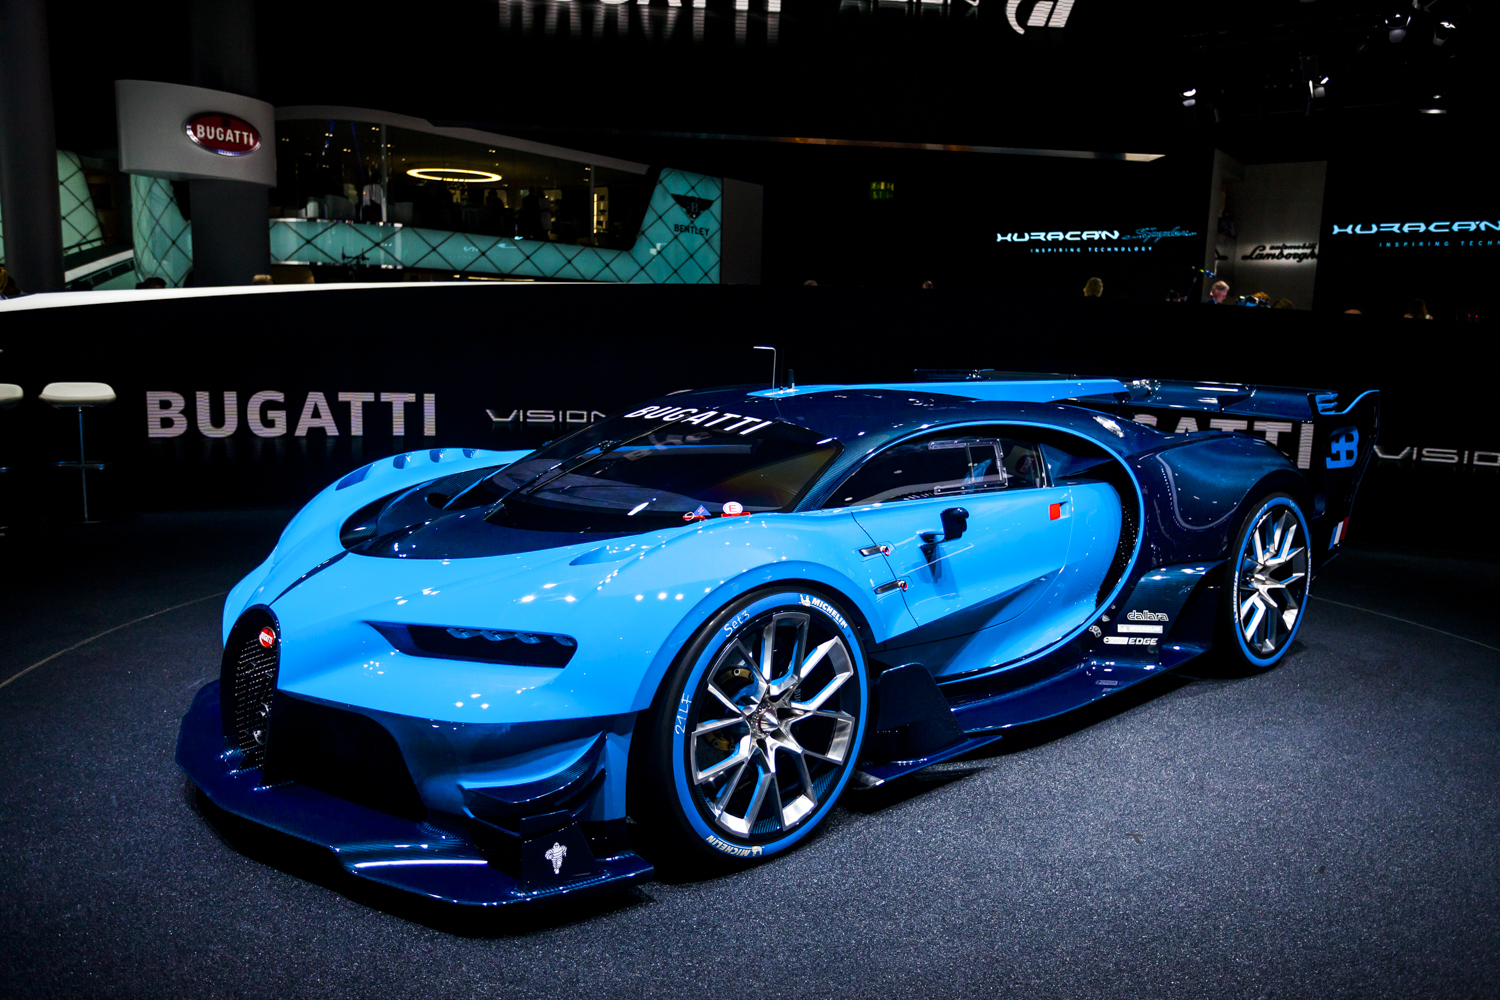 iaa 2015 bugatti vision gran turismo. Black Bedroom Furniture Sets. Home Design Ideas